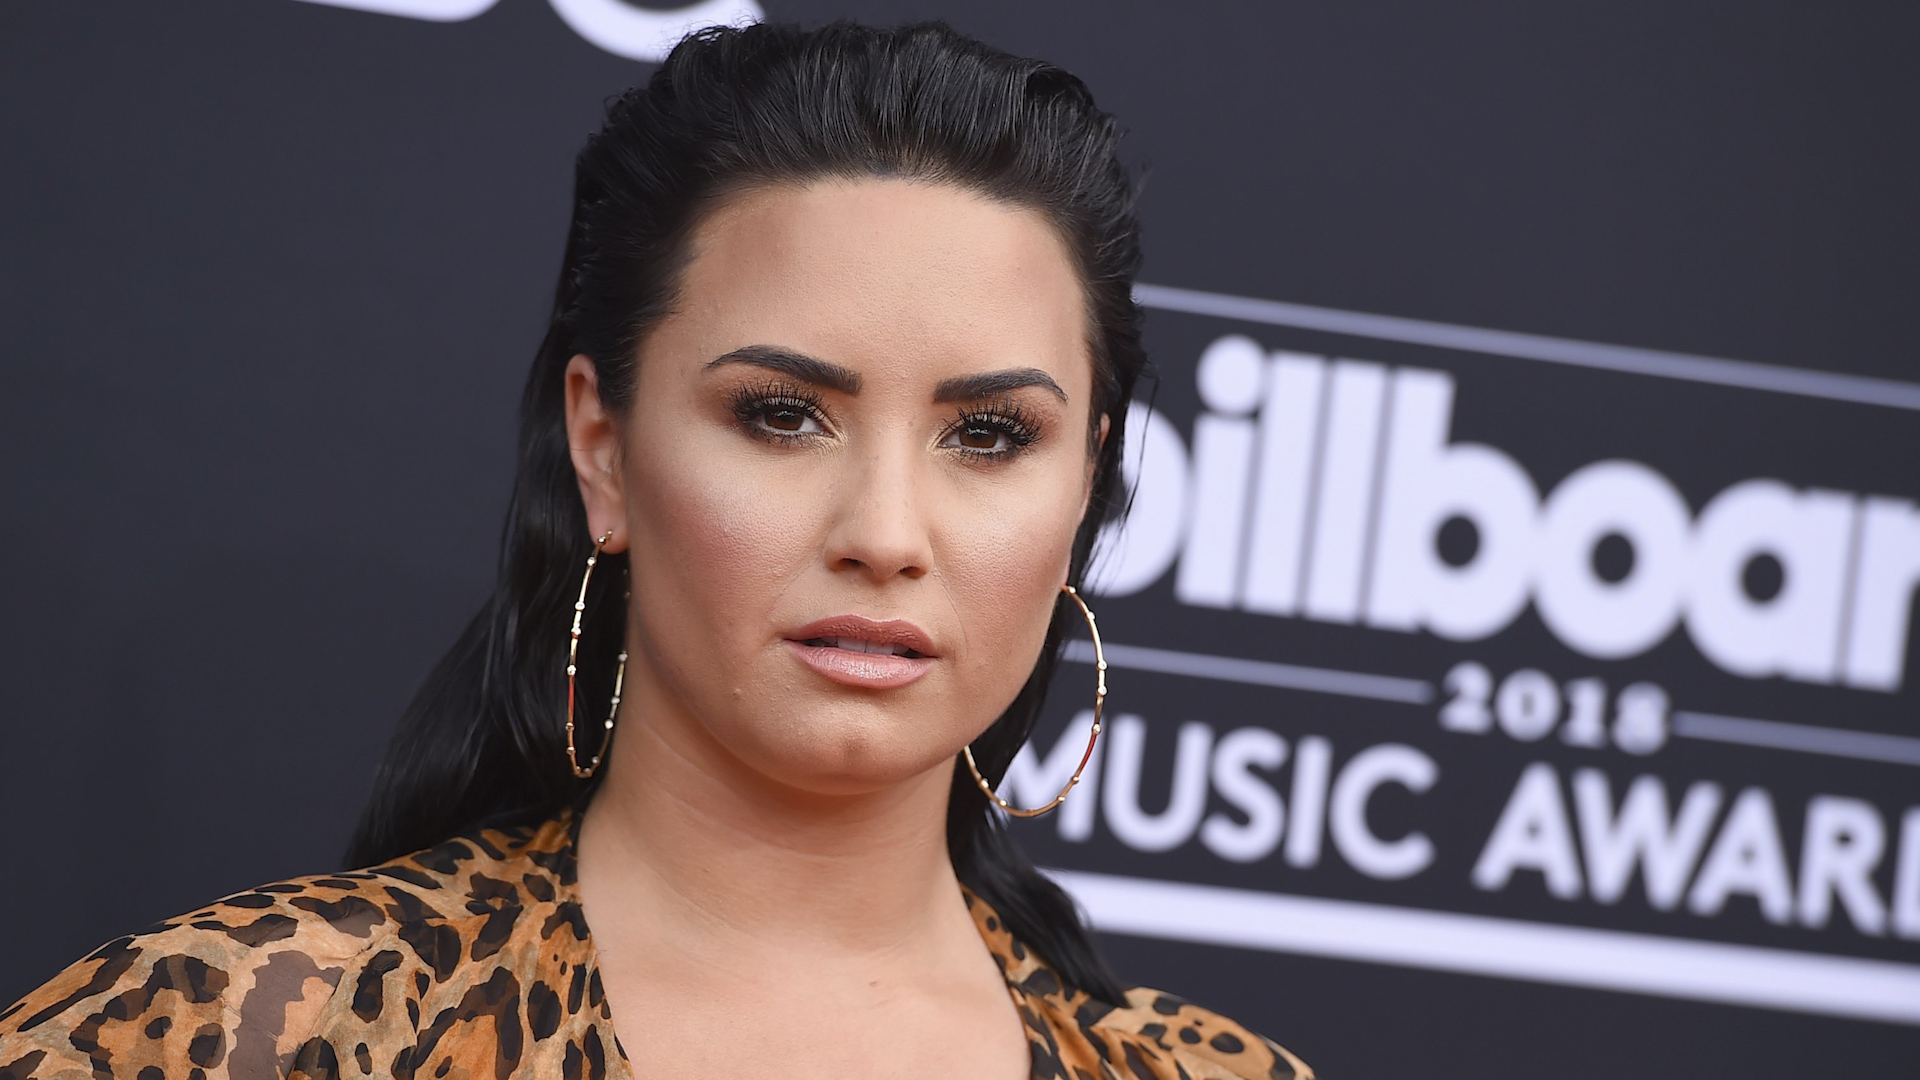 Police Confirm Demi Lovato Is Not Under Criminal Investigation